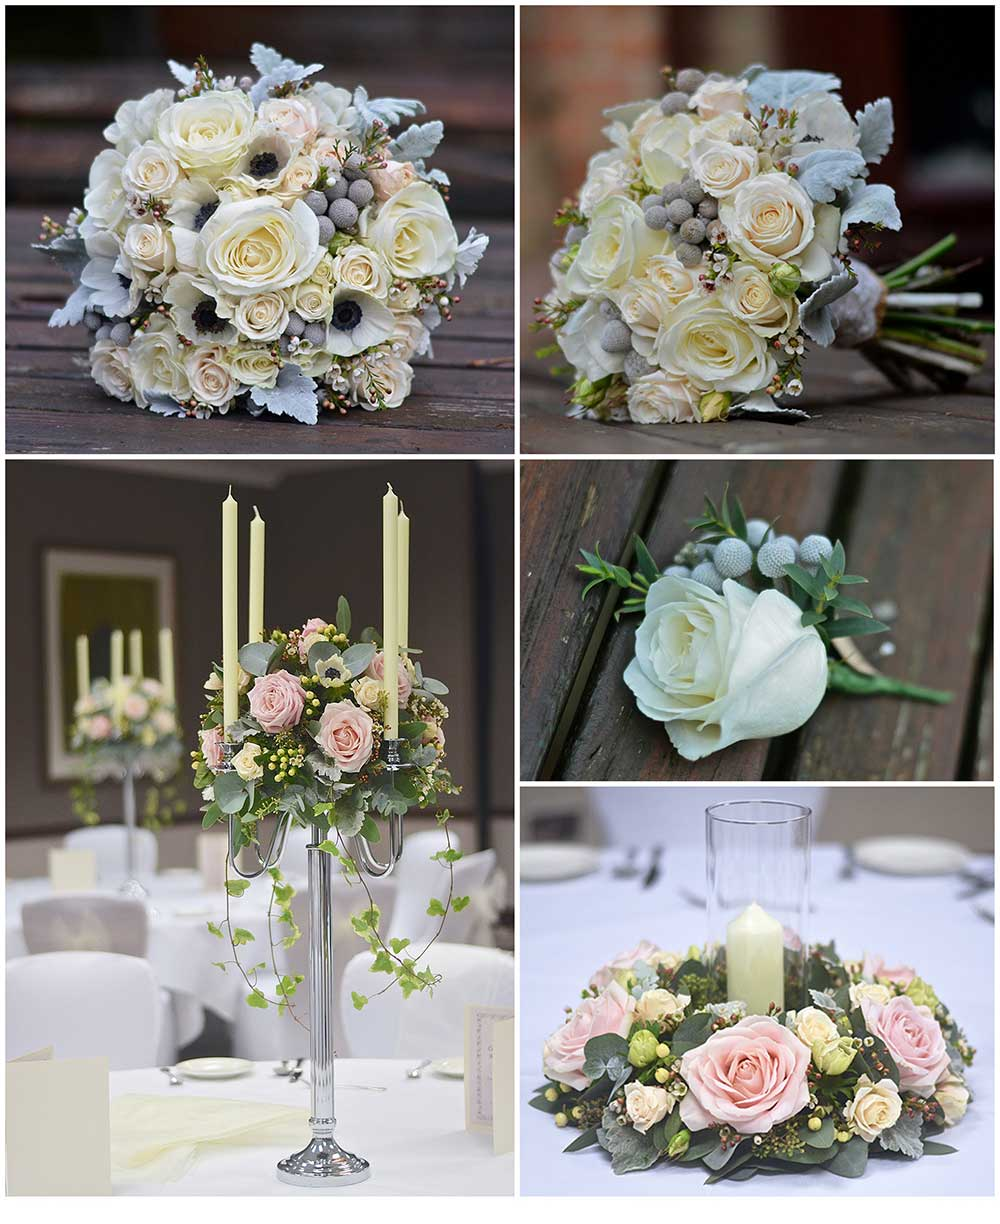 fiori by lynne wedding flowers southampton hampshire featured weddings images and ideas gallery. Black Bedroom Furniture Sets. Home Design Ideas